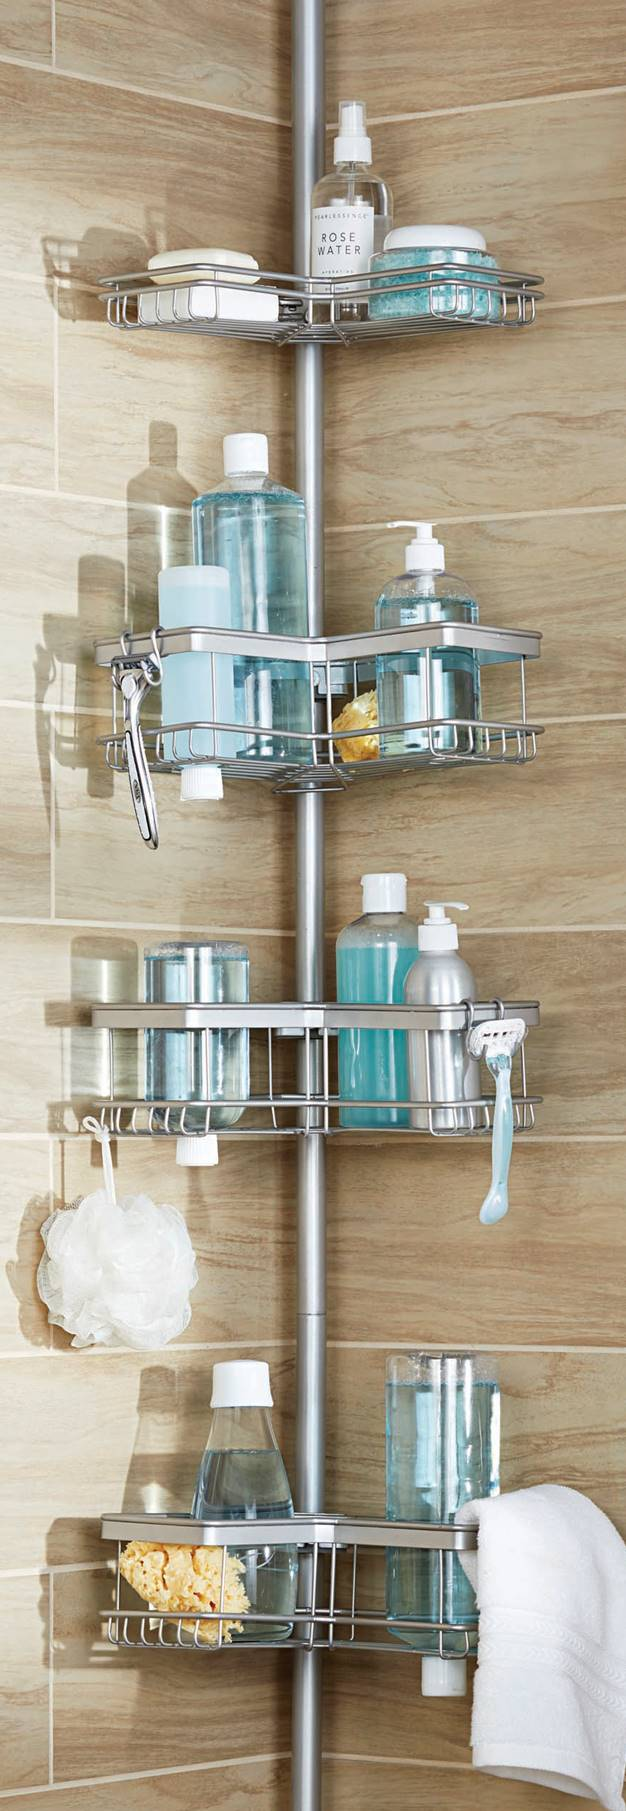 Click here to buy Better Homes & Gardens Contoured Tension Pole Shower Caddy, Satin Nickel by Supplier Generic.